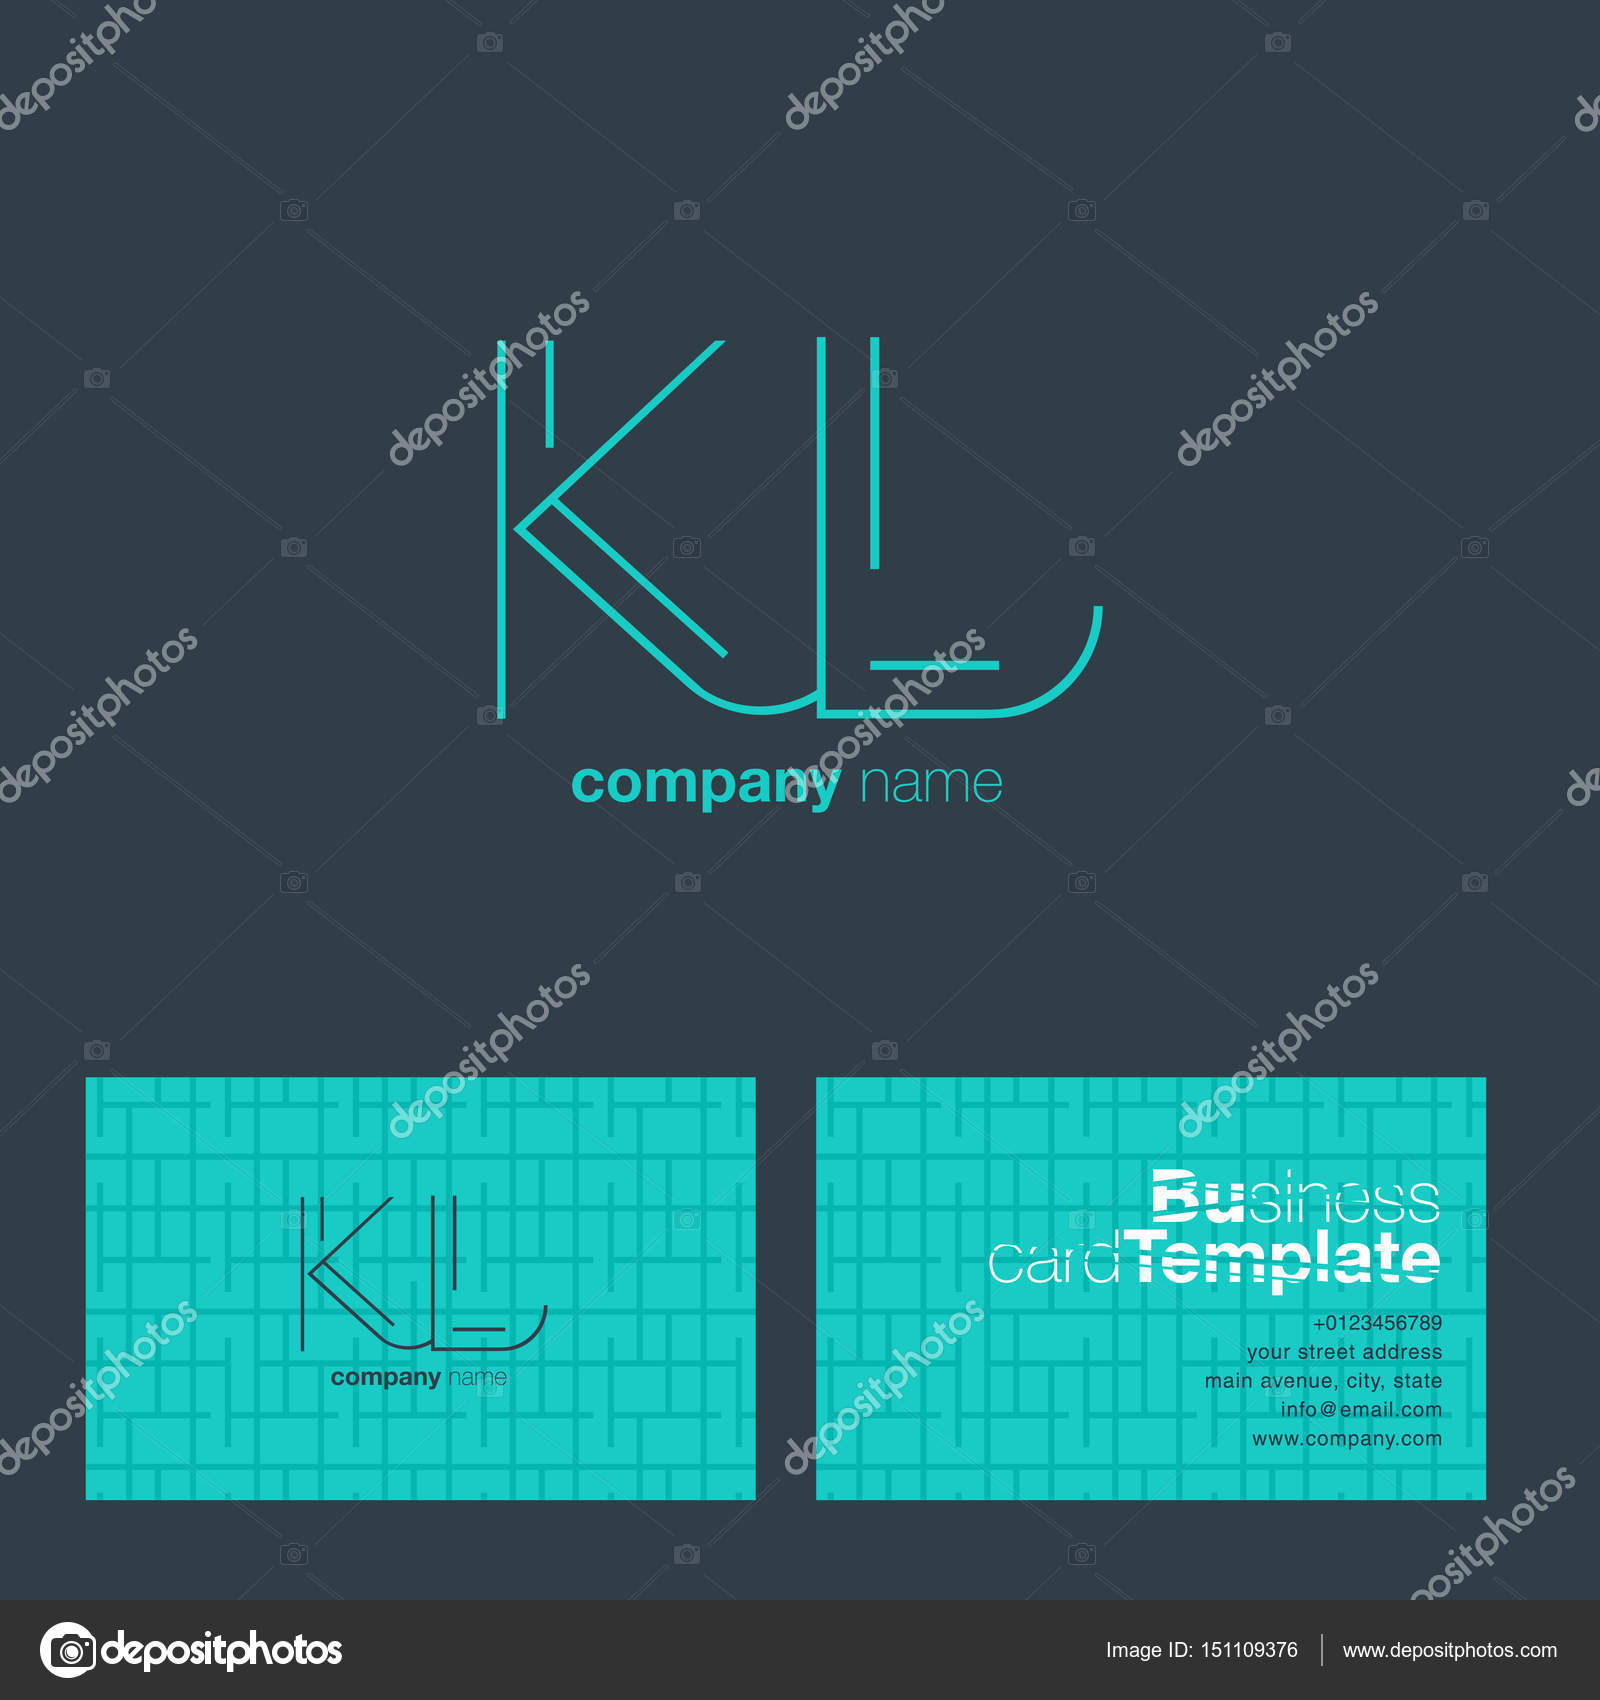 Kl letters logo business card stock vector brainbistro 151109376 kl letters logo business card stock vector reheart Choice Image